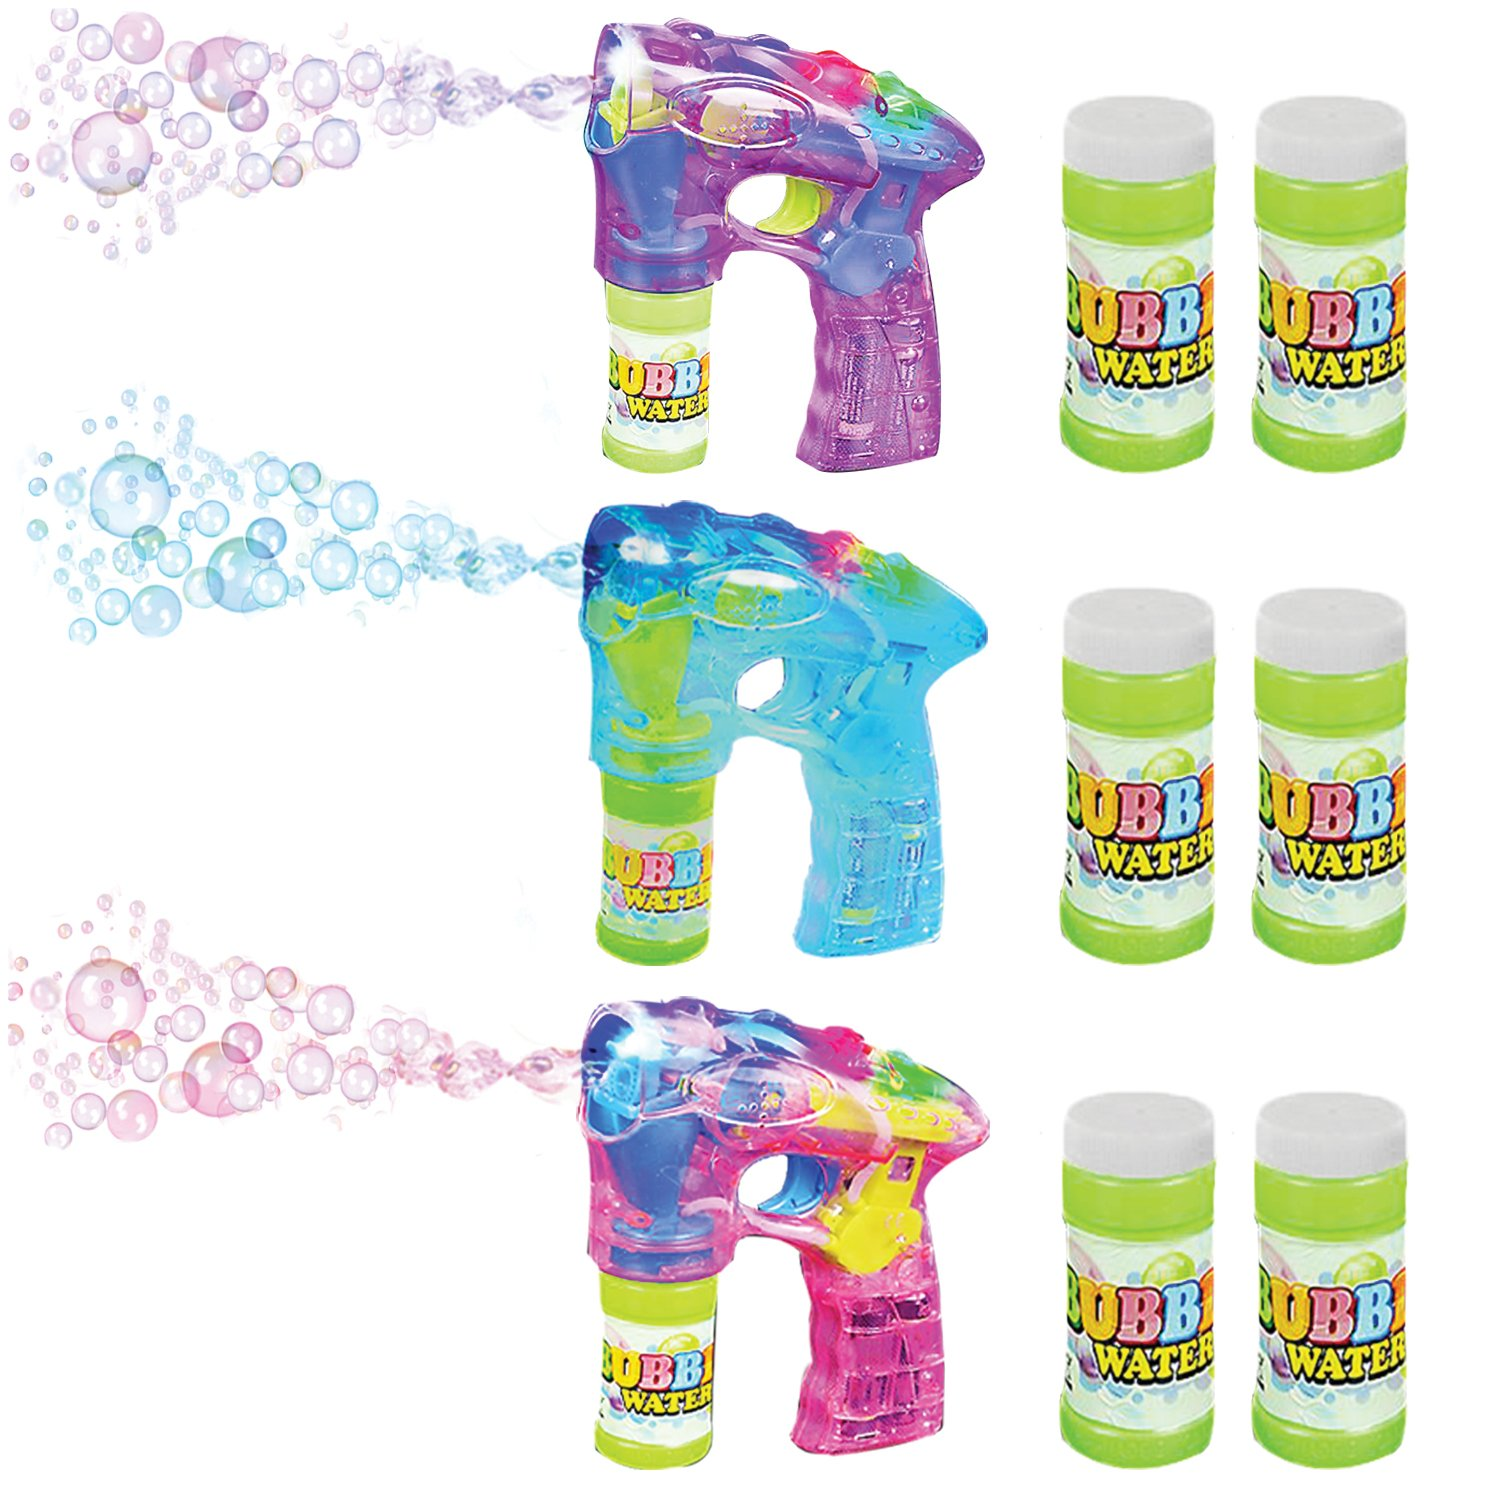 """ArtCreativity Blue, Pink & Purple Bubble Blaster Set with LED Light Up and Sound, by Includes 7"""" bubble guns & 6 Bottles of Bubbles, Party Favors (Batteries Included)"""